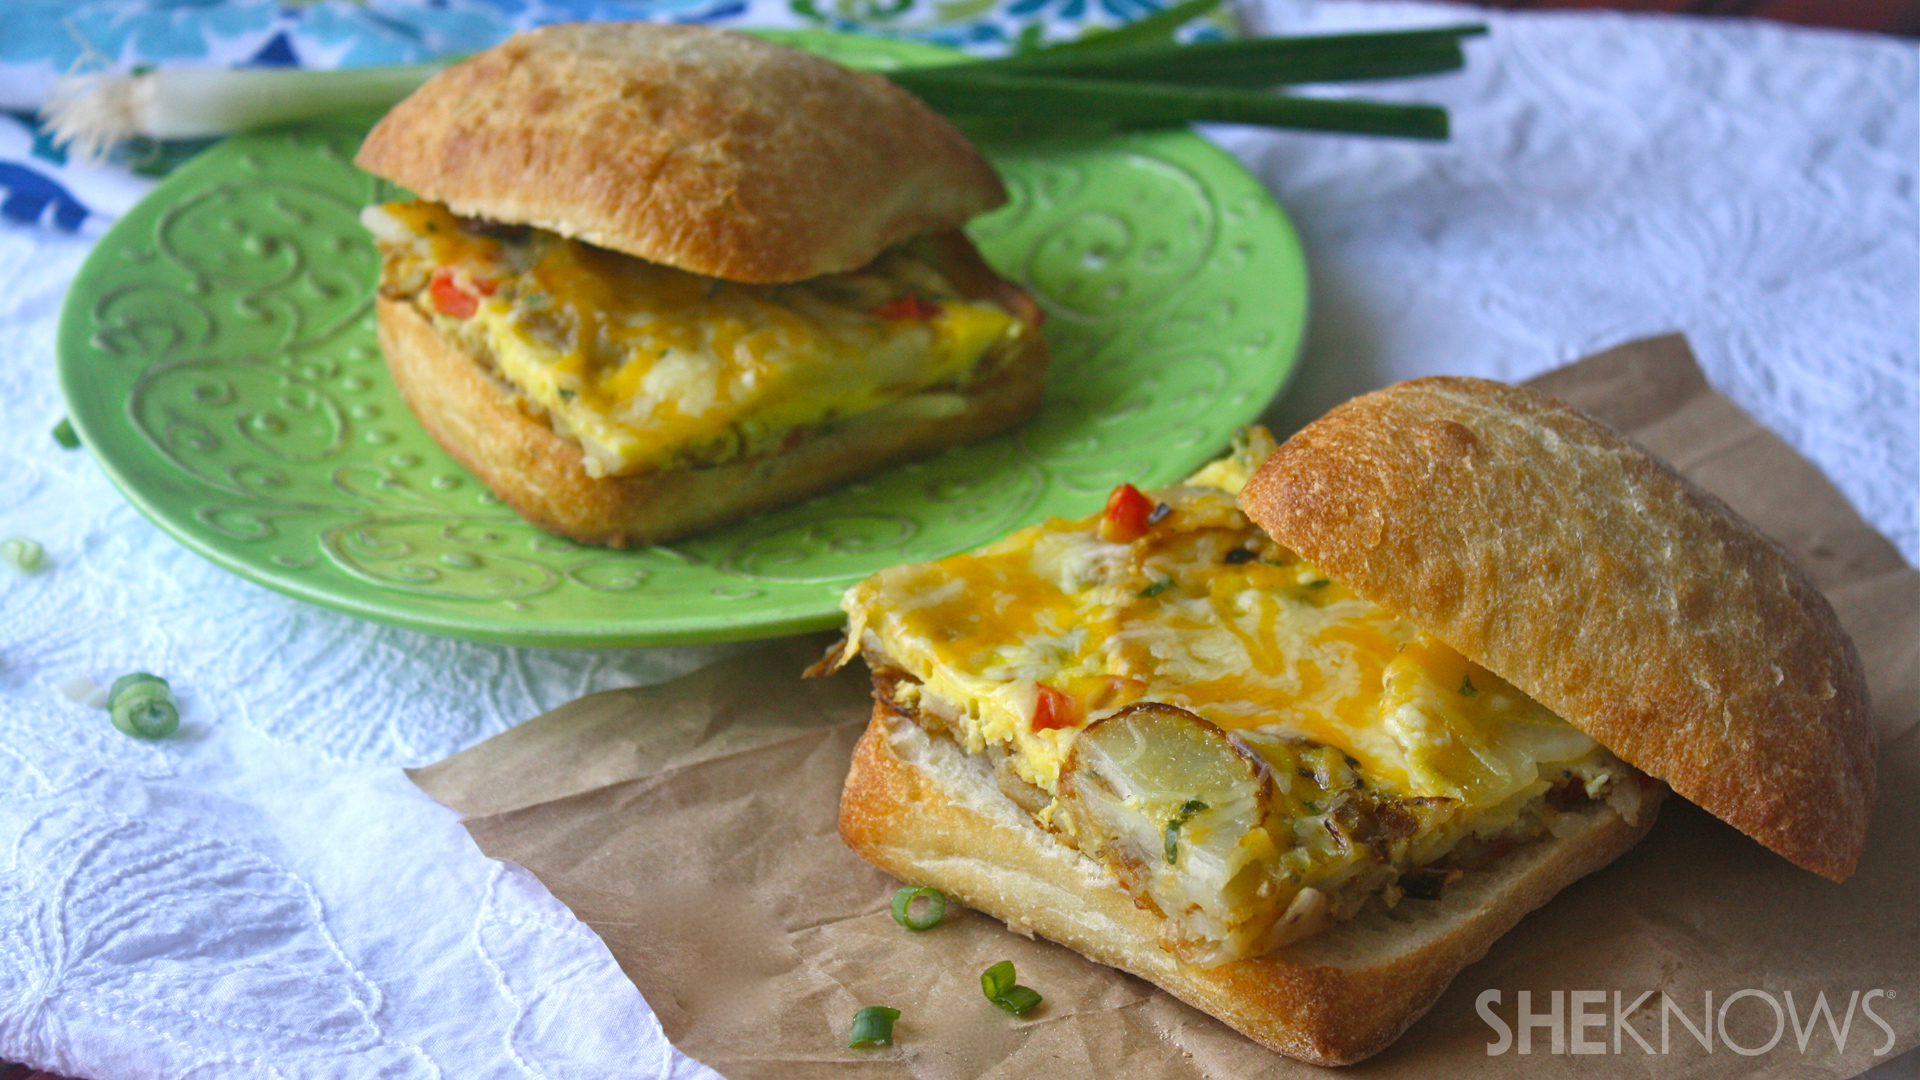 Spanish omelet sandwiches